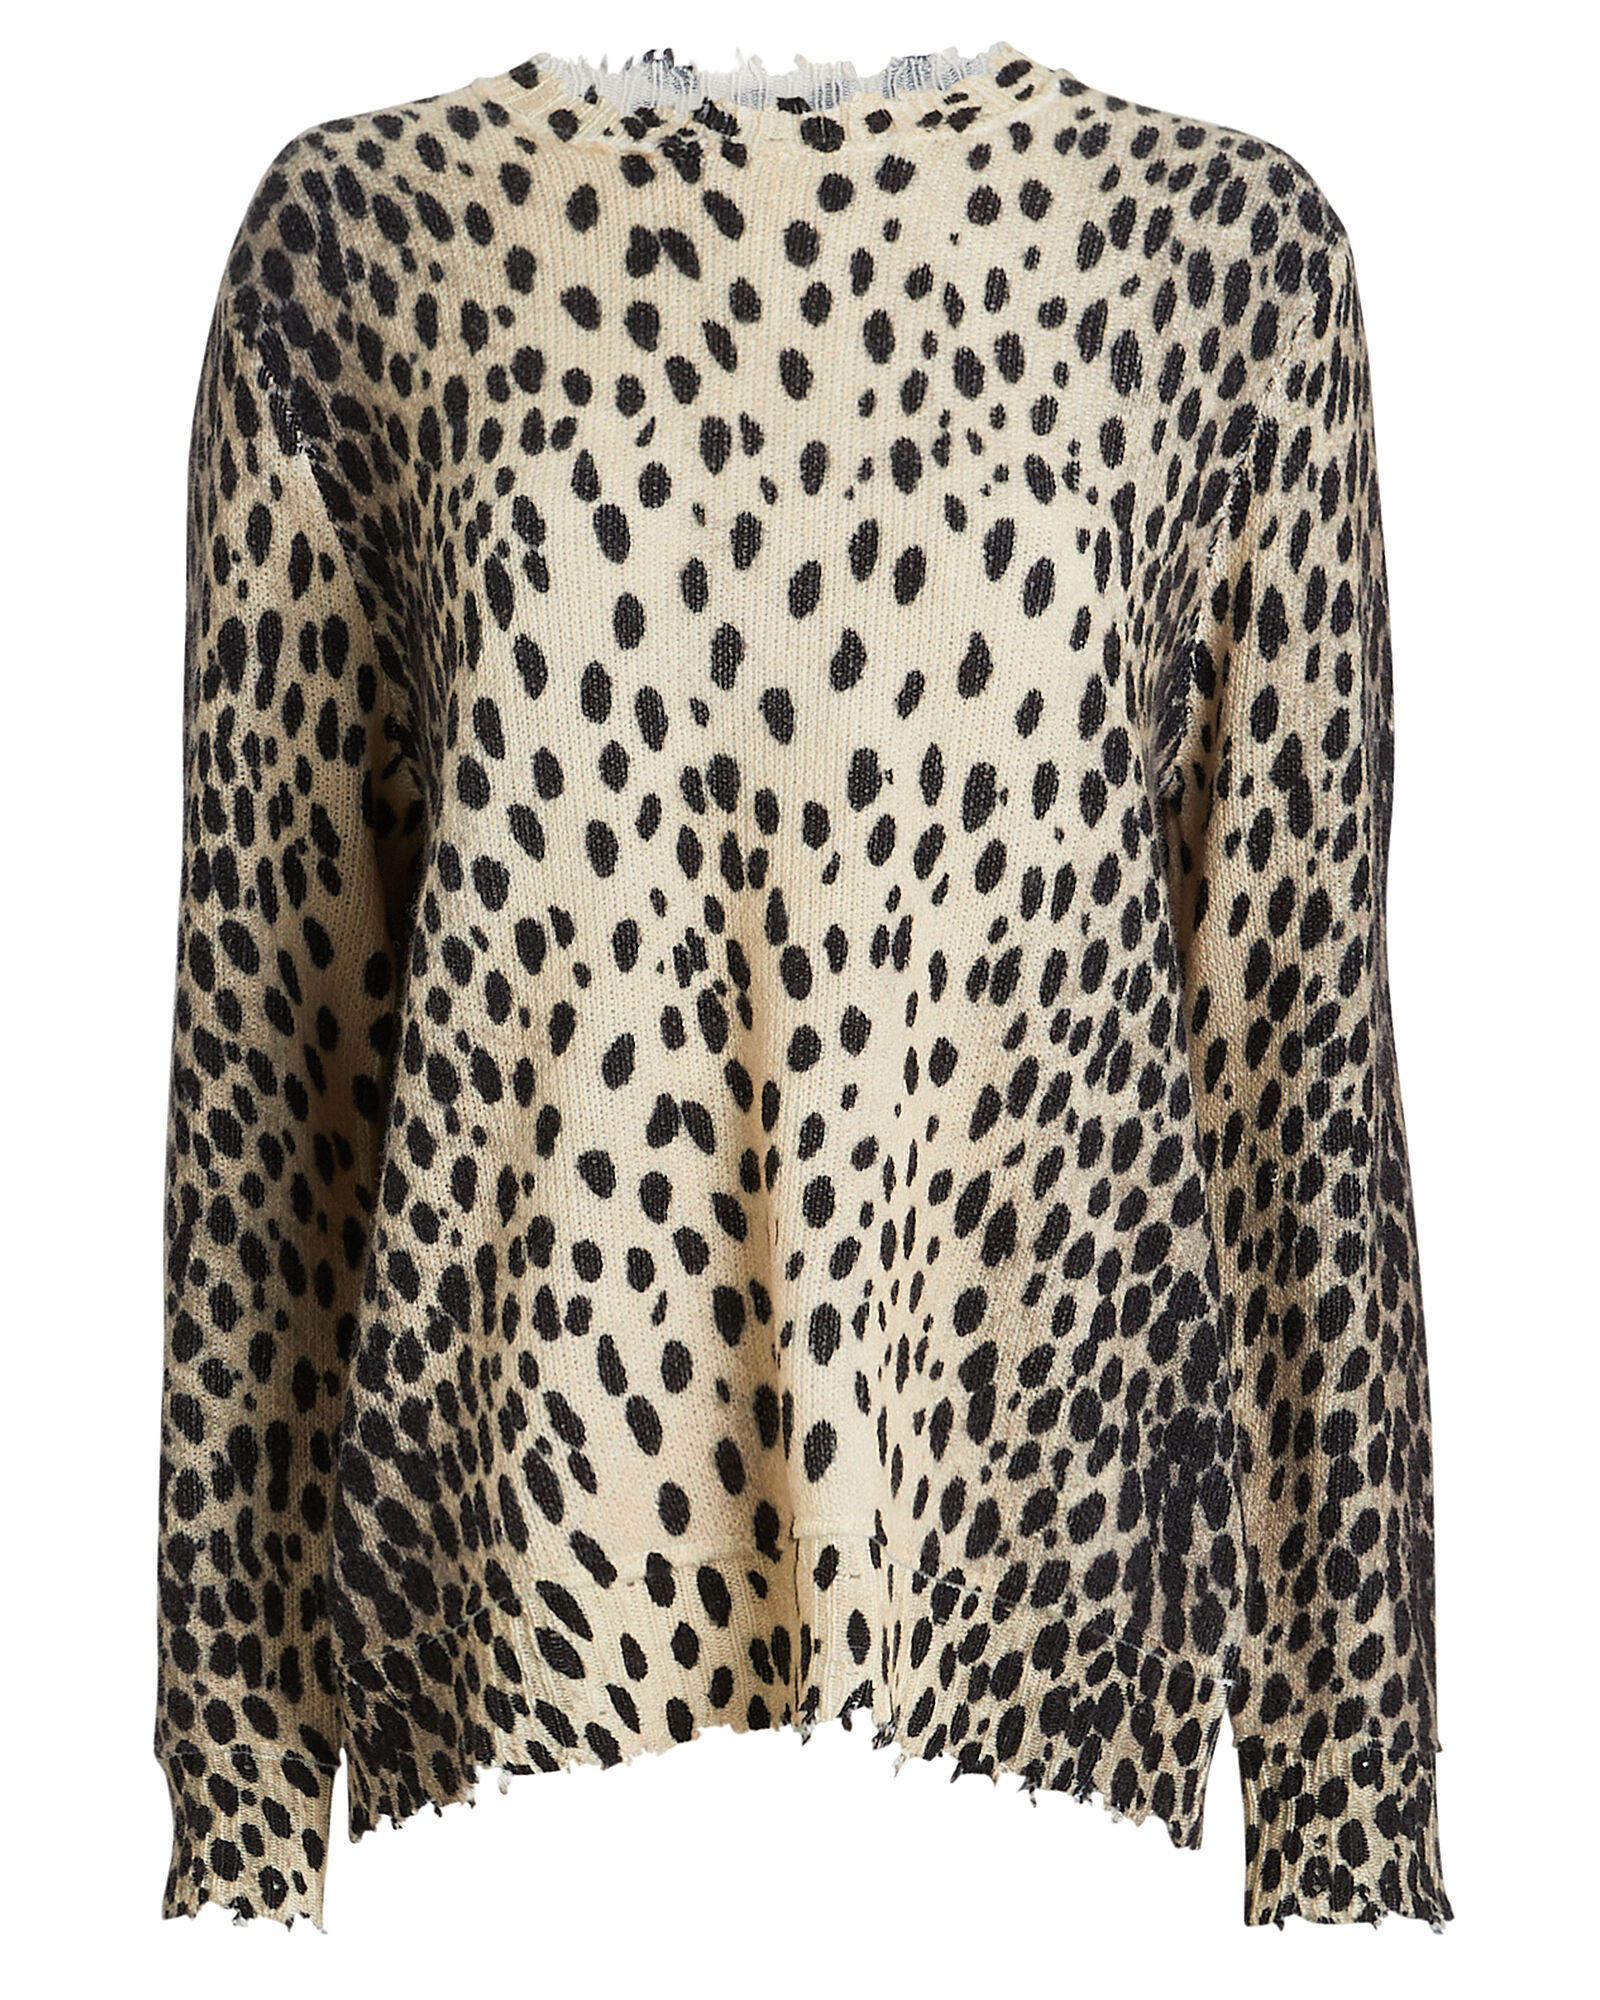 Cheetah Cashmere Crewneck Sweater, BEIGE/CHEETAH, hi-res